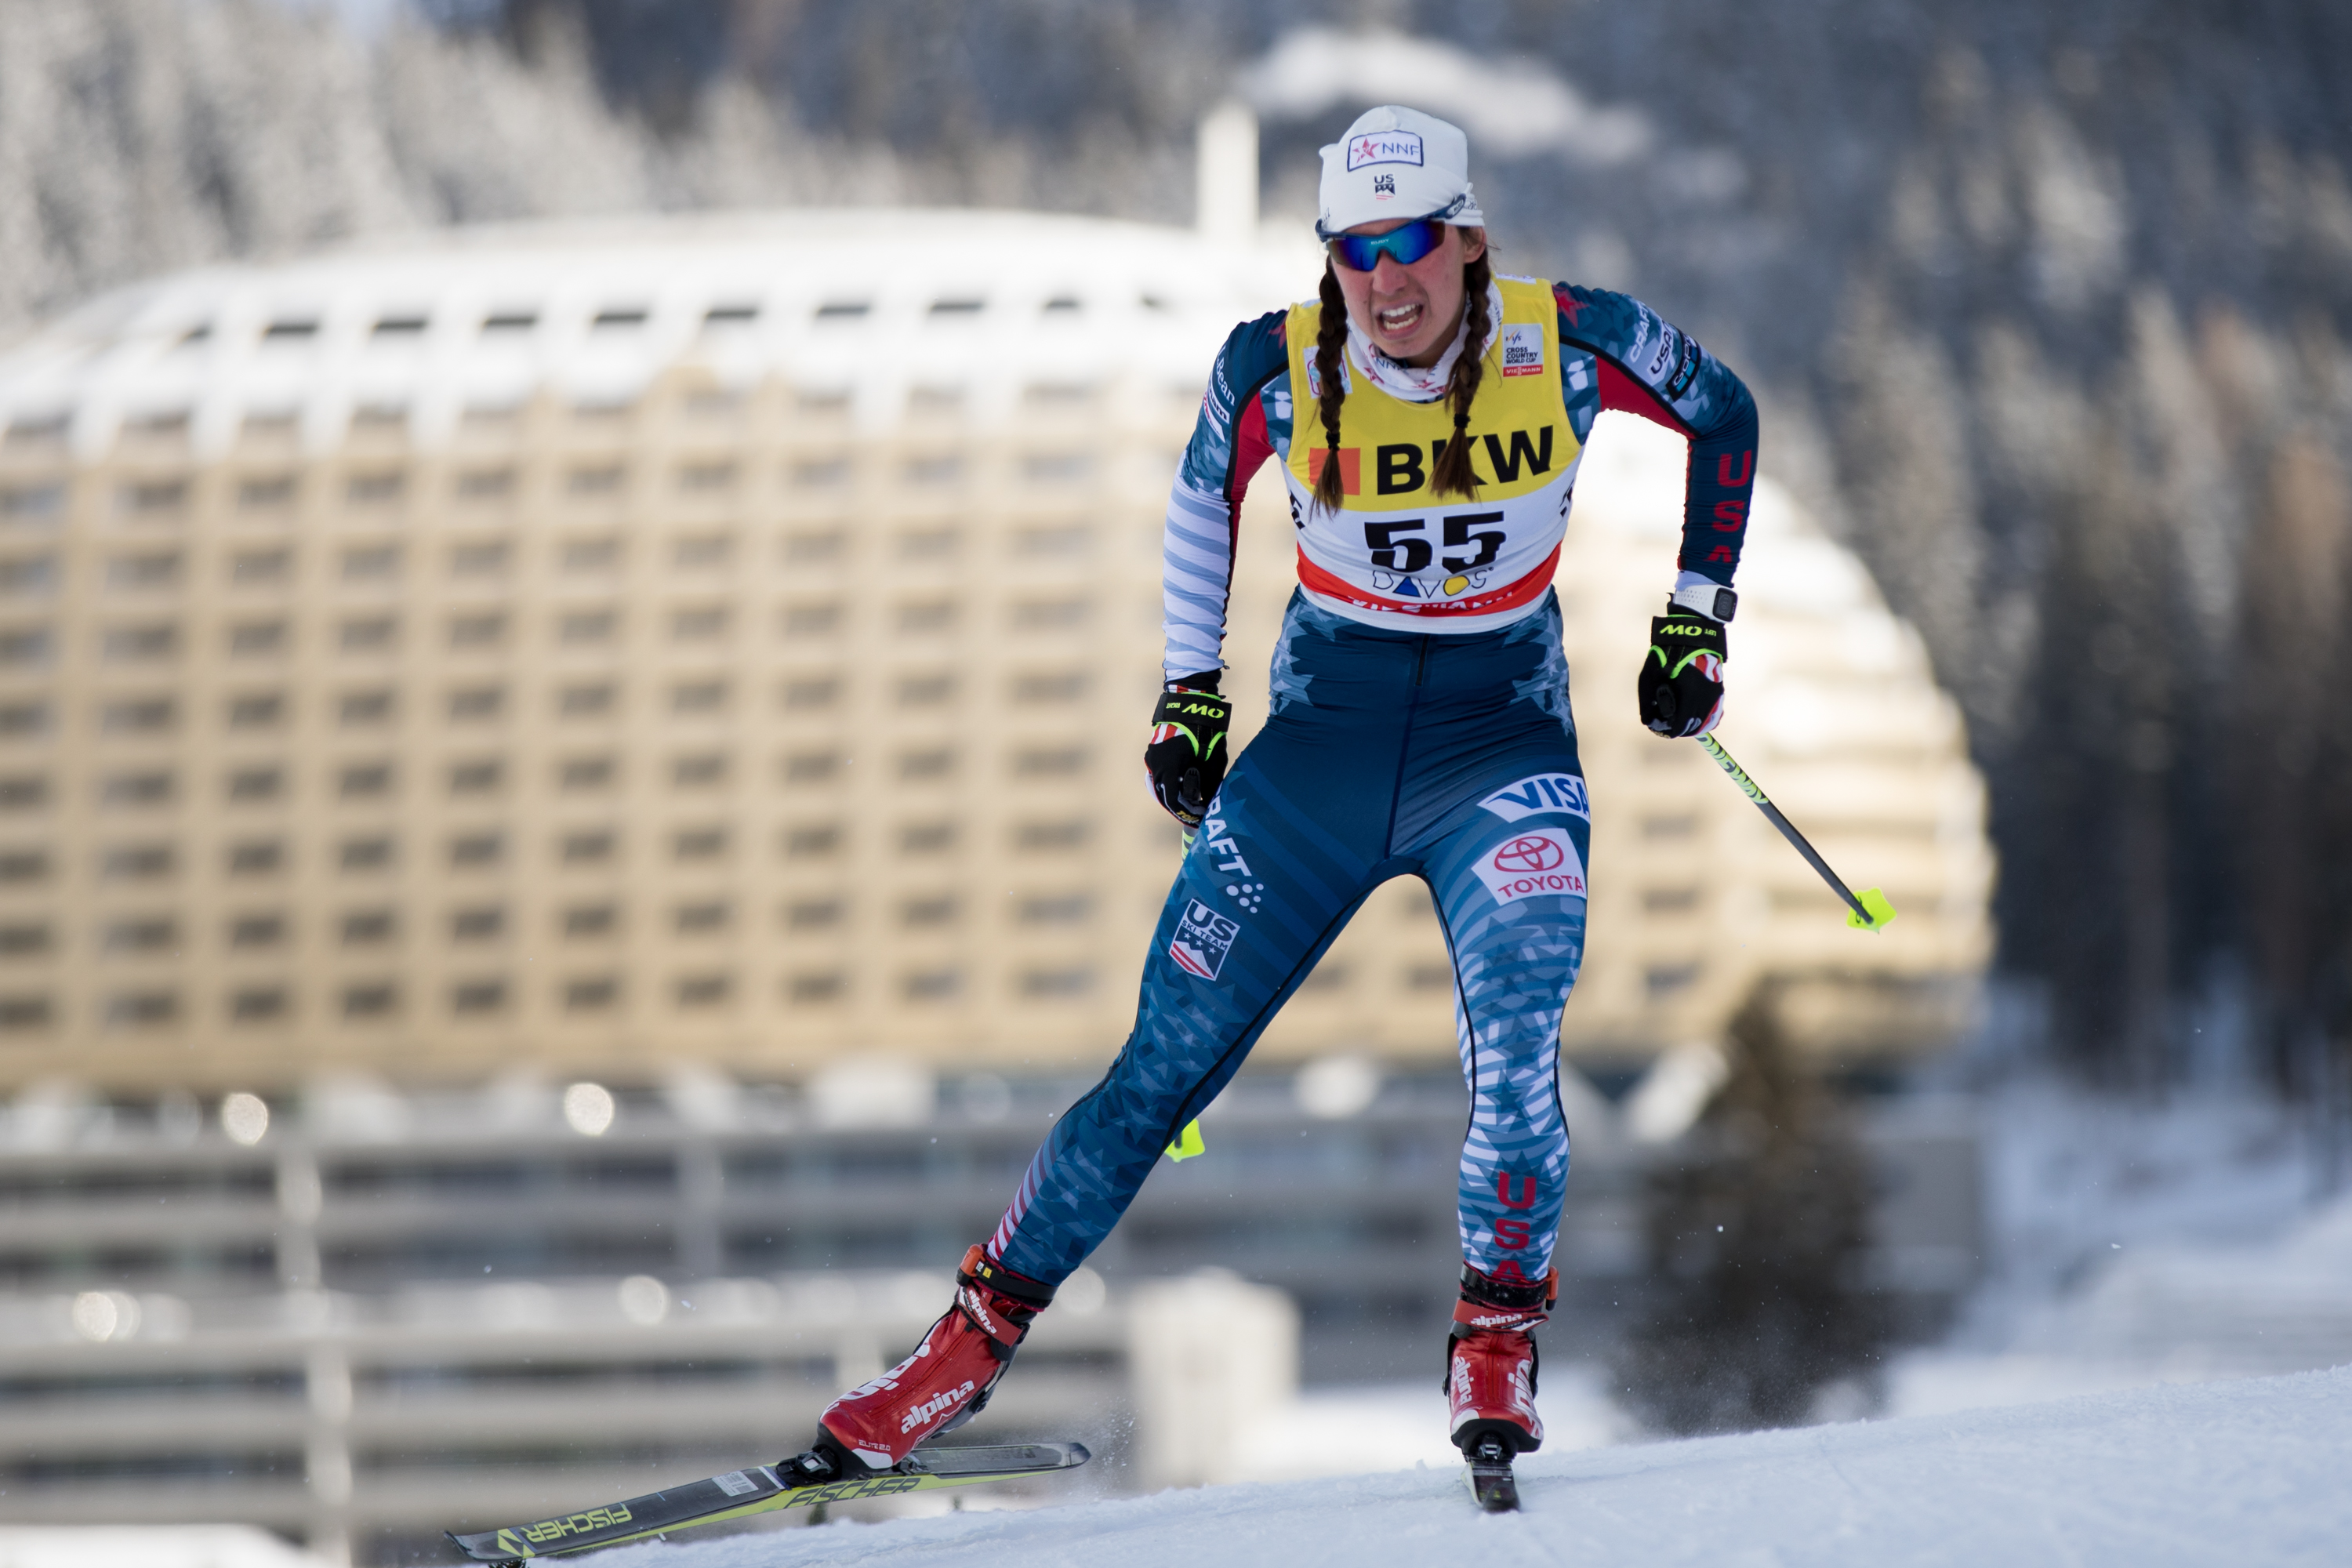 https://fasterskier.com/wp-content/blogs.dir/1/files/2017/12/Davos-WC-Sprint-Qualifiers-12.9.17-1414.jpg